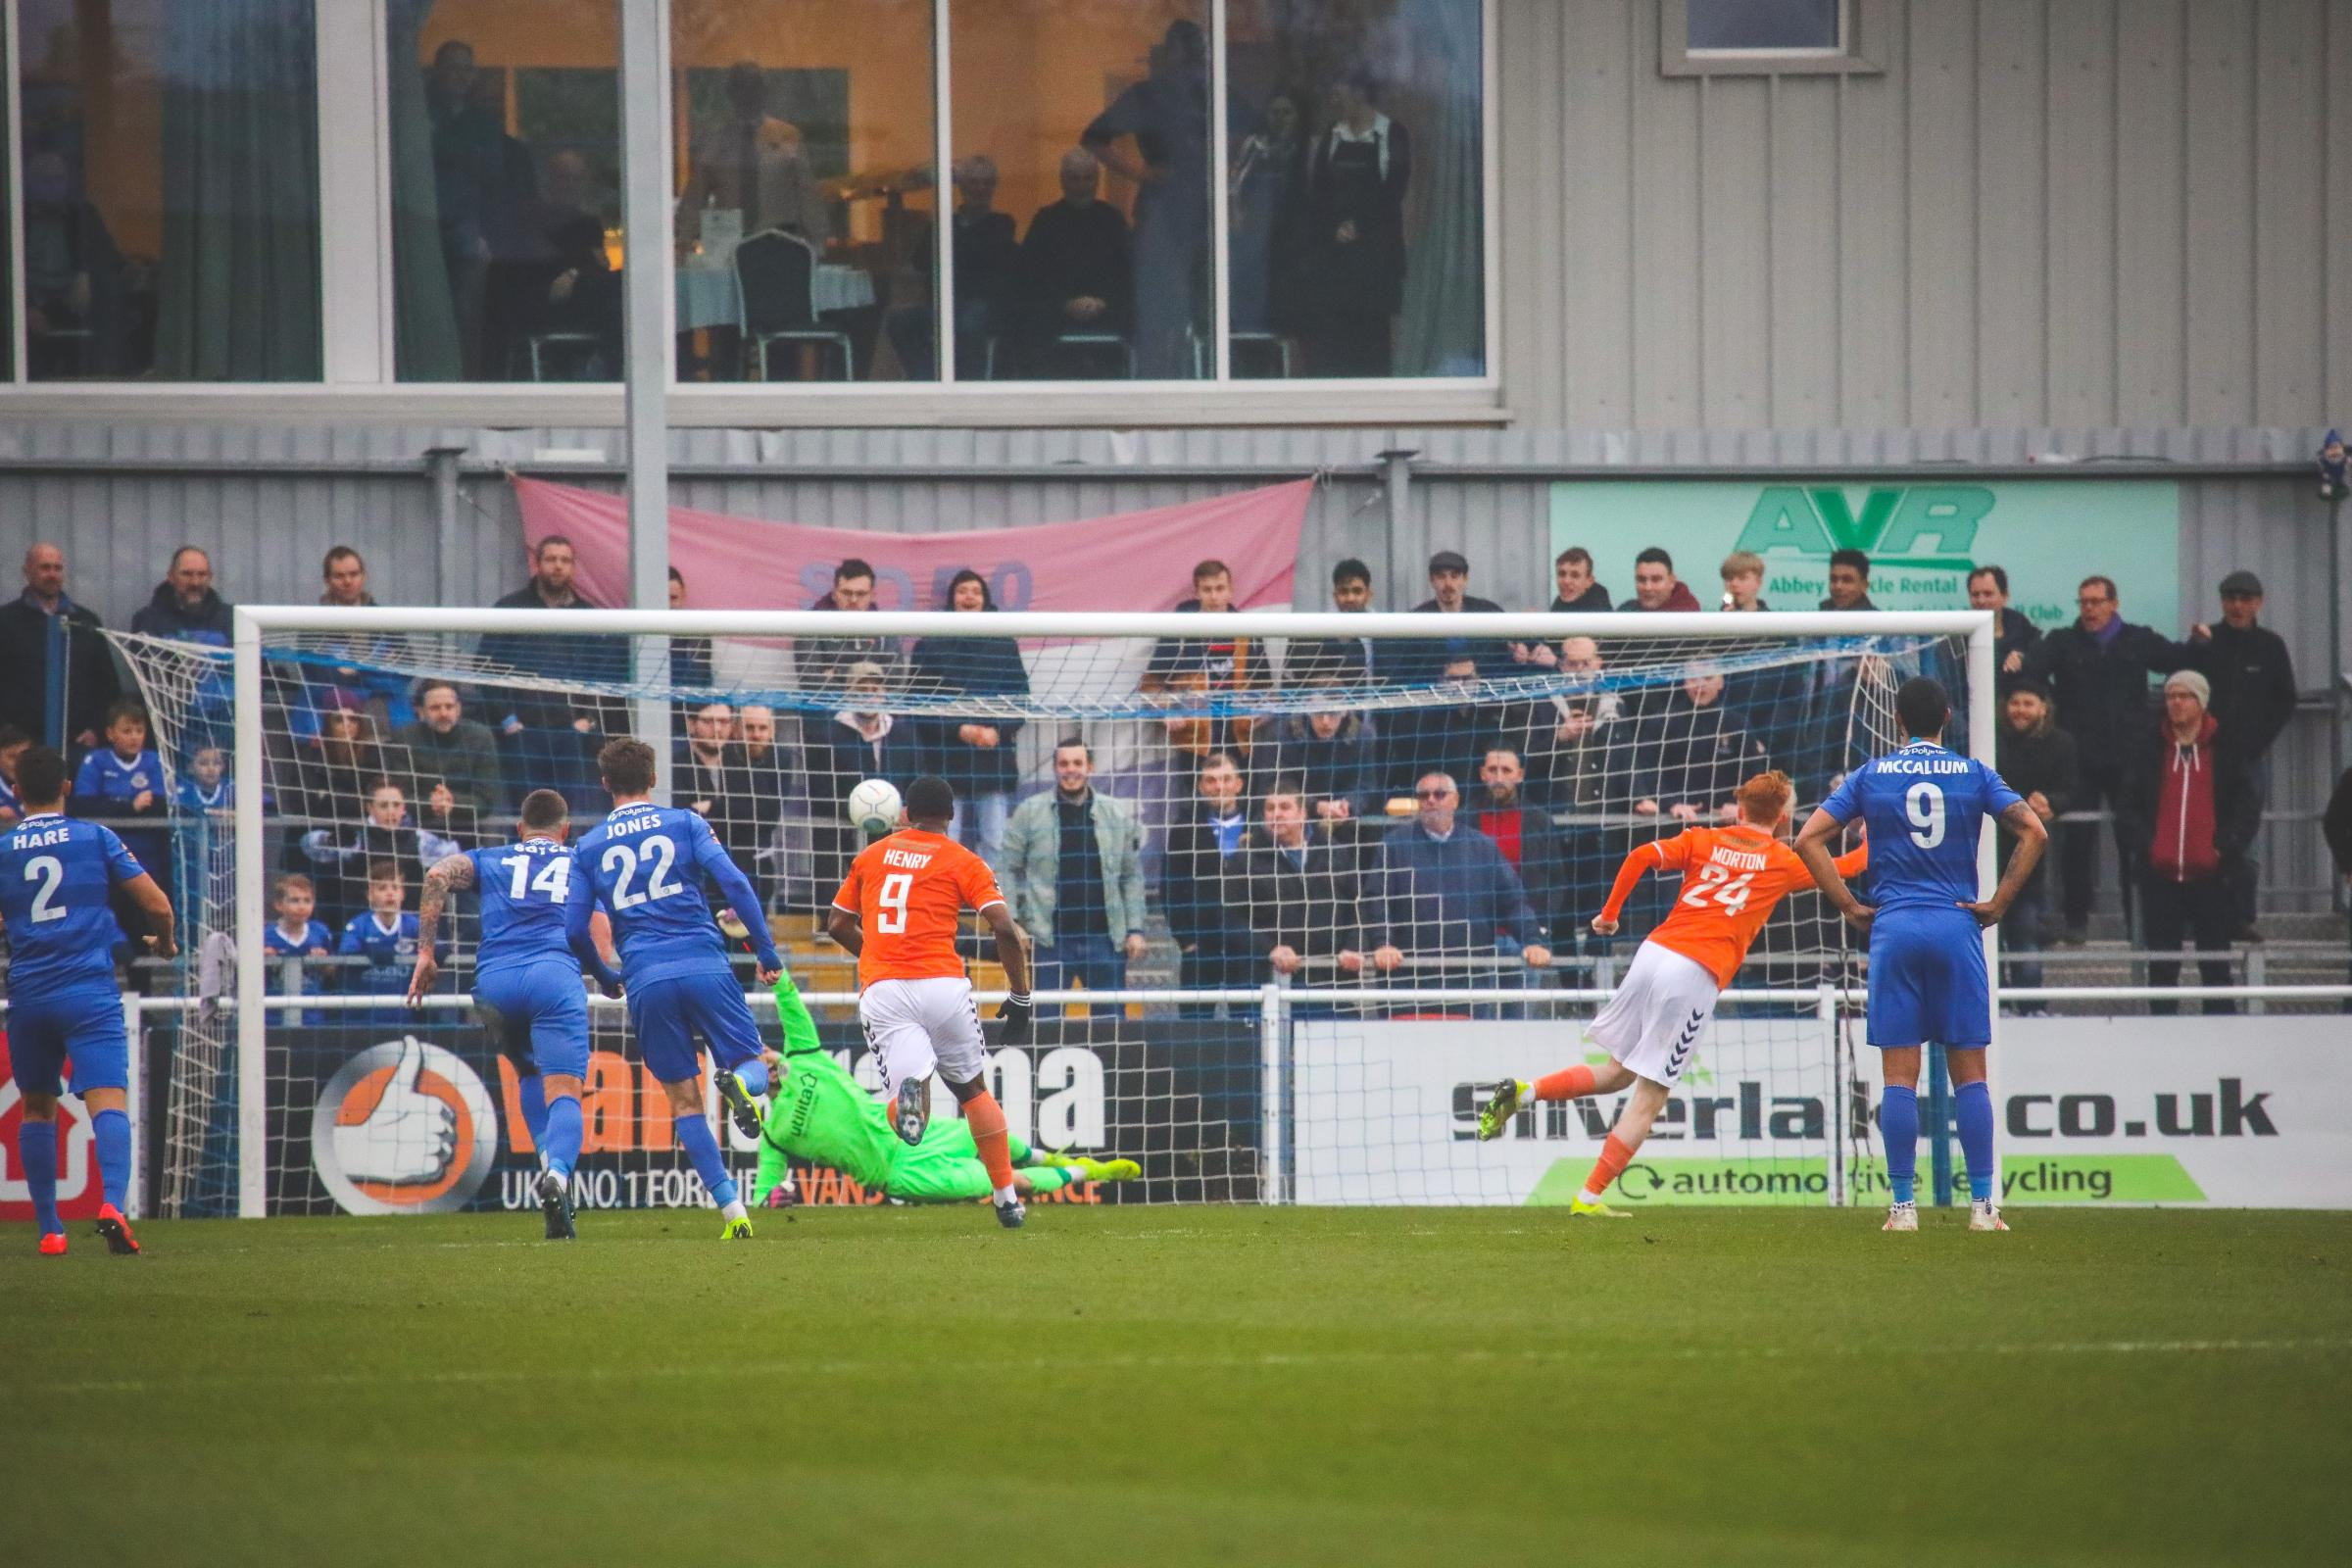 Luke Southwood's penalty save (photo: Tom Mulholland)